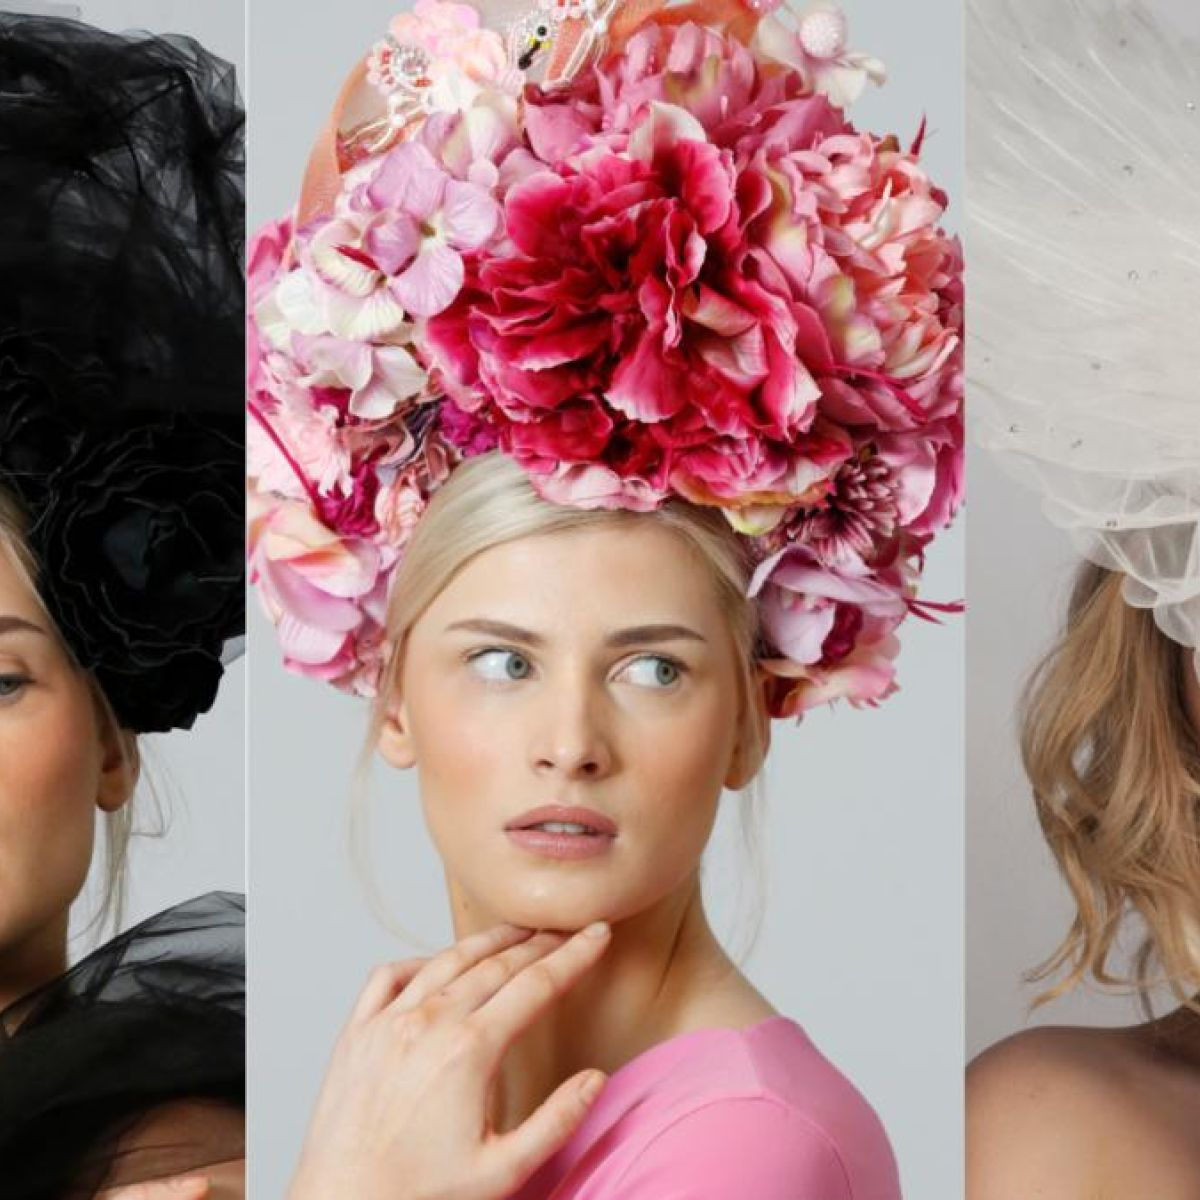 62979872e Turning heads: Hats off to the new crop of Irish milliners